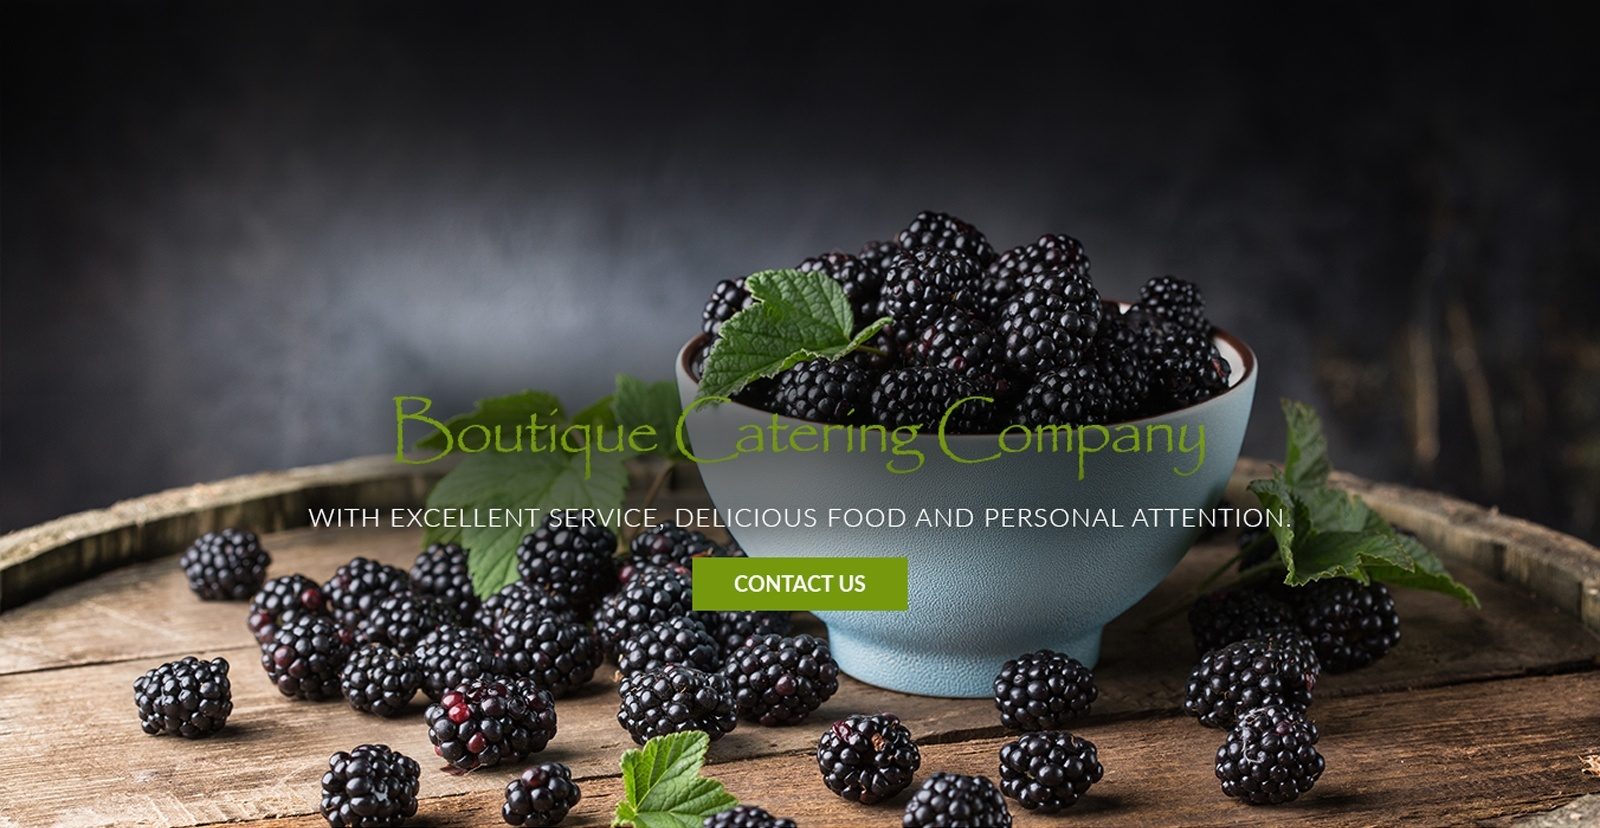 Boutique Catering Company with Excellent Service, Delicious Food, and Personal Attention.